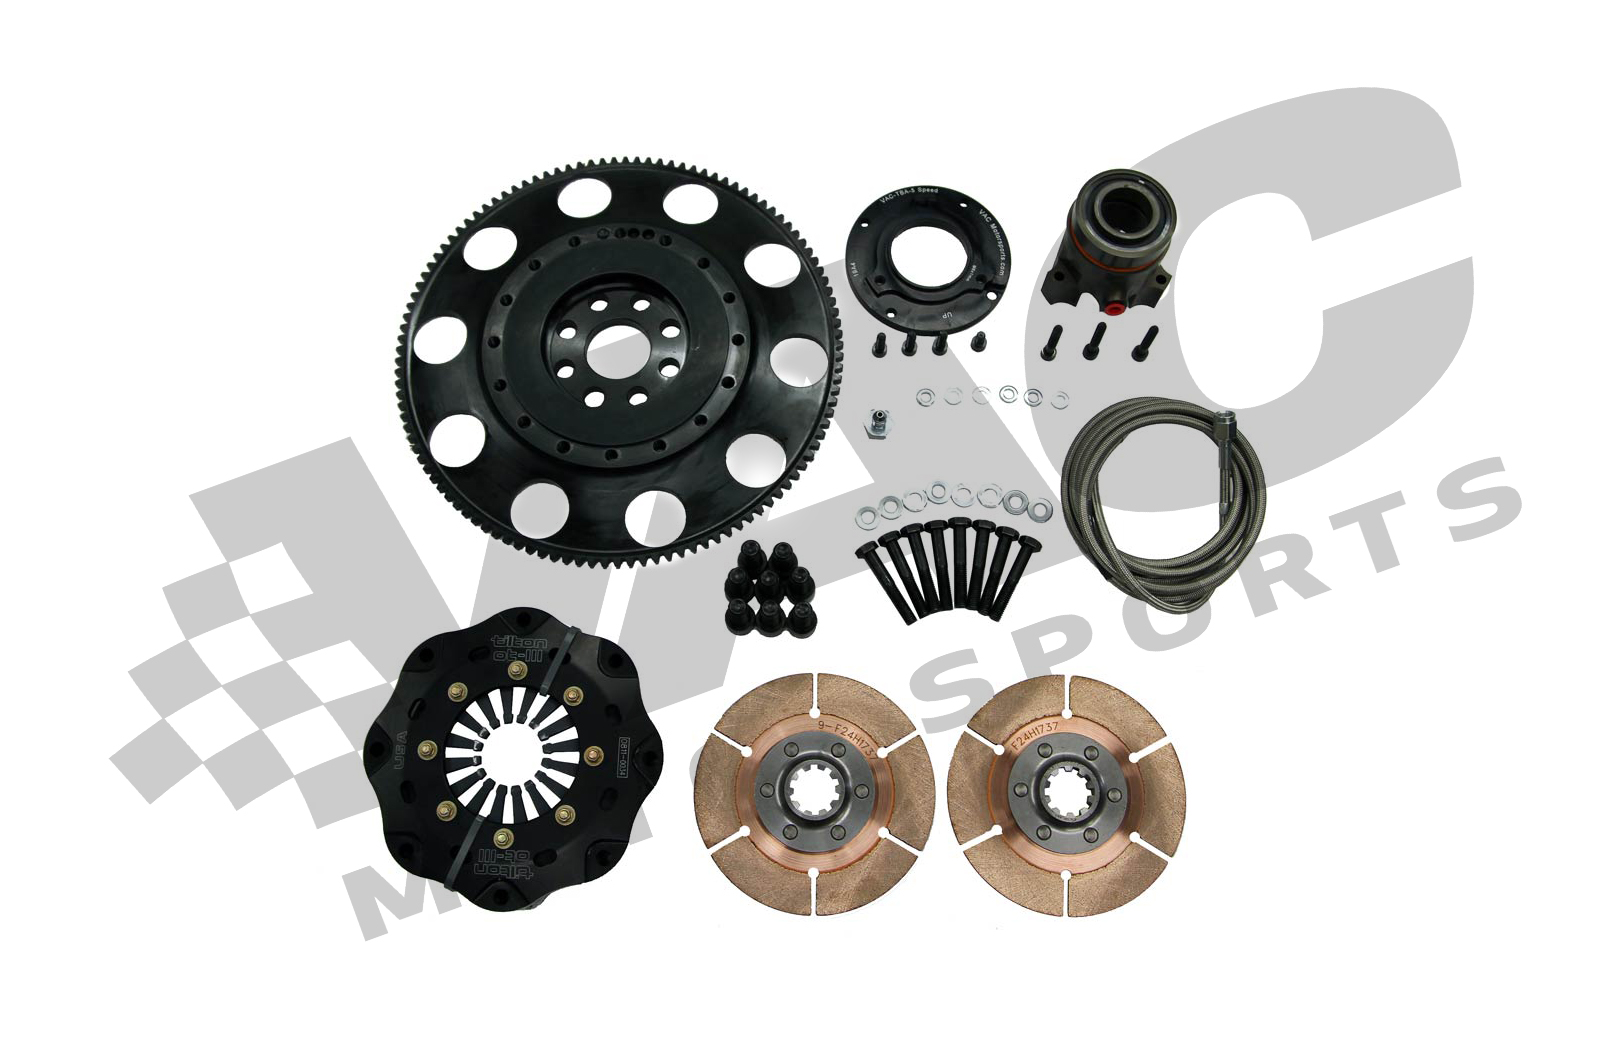 VAC Clutch and Lightweight Racing Flywheel Kit (BMW M50/M52/S50/S52) THUMBNAIL